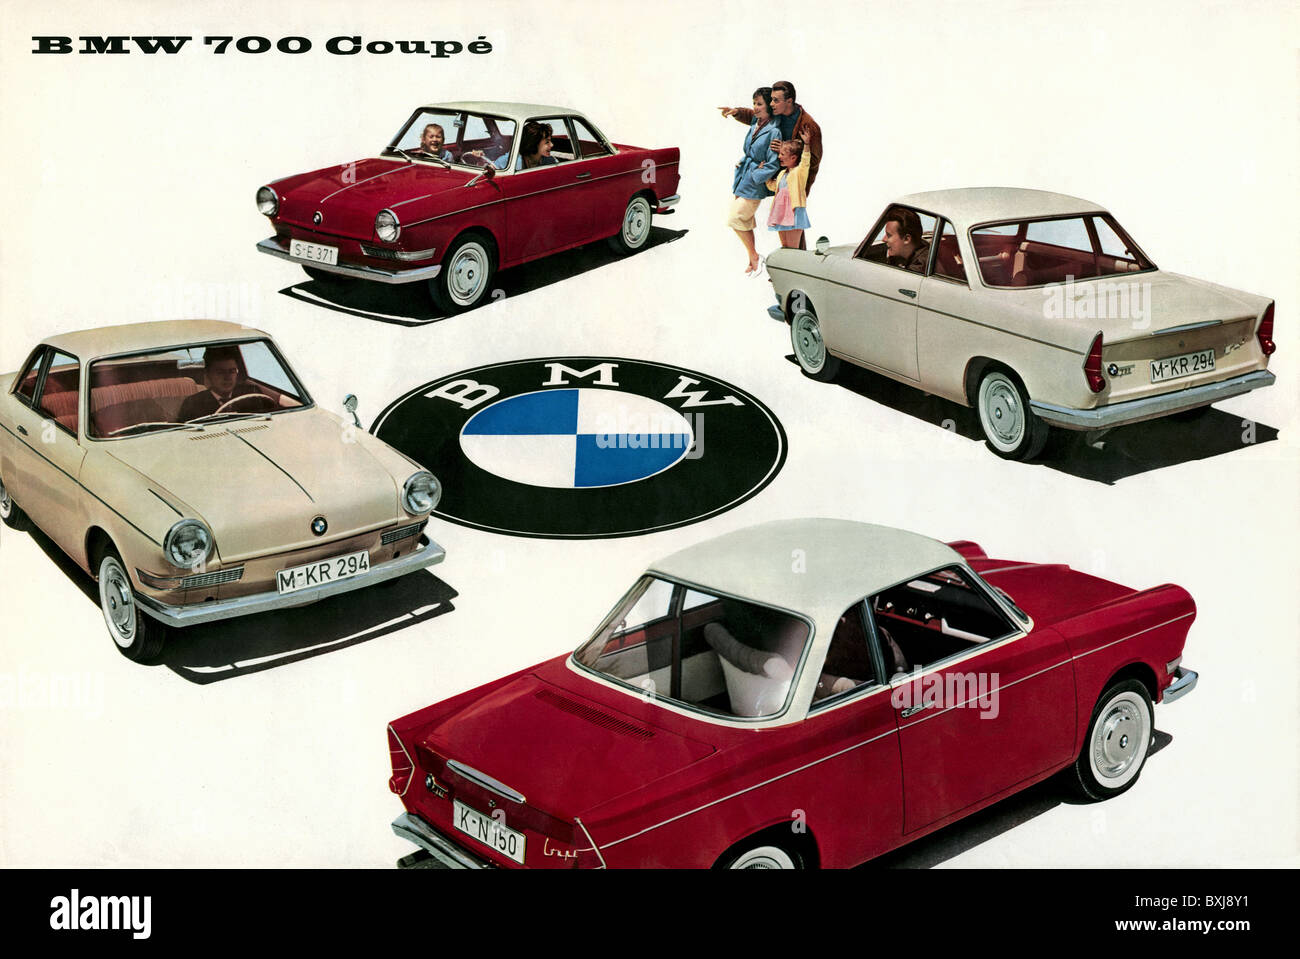 bmw advertising stockfotos bmw advertising bilder alamy. Black Bedroom Furniture Sets. Home Design Ideas